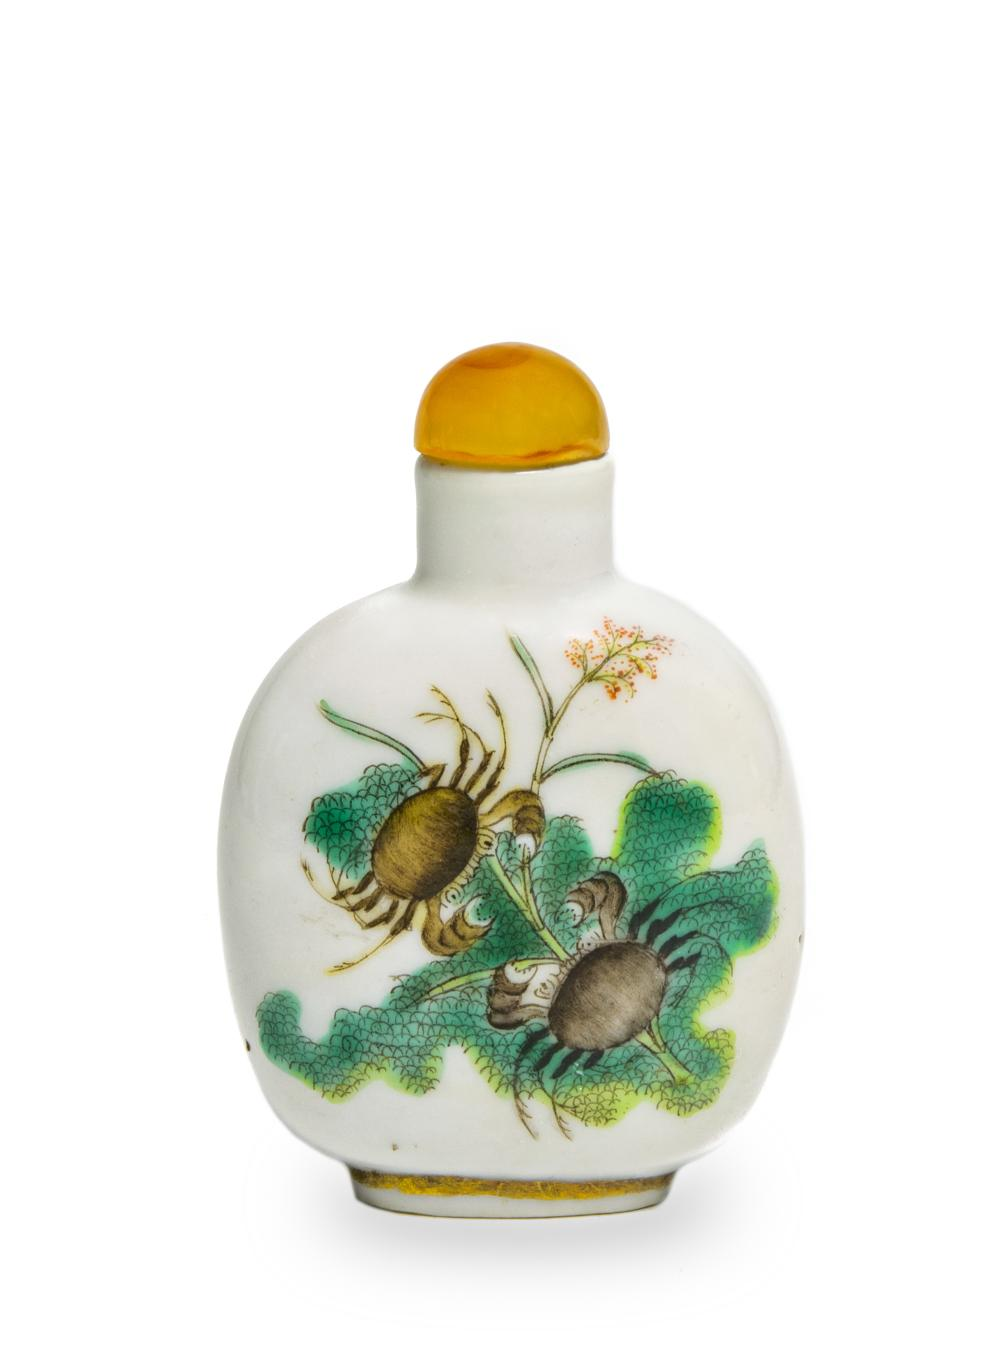 CHINESE IMPERIAL PORCELAIN SNUFF BOTTLE, DAOGUANG